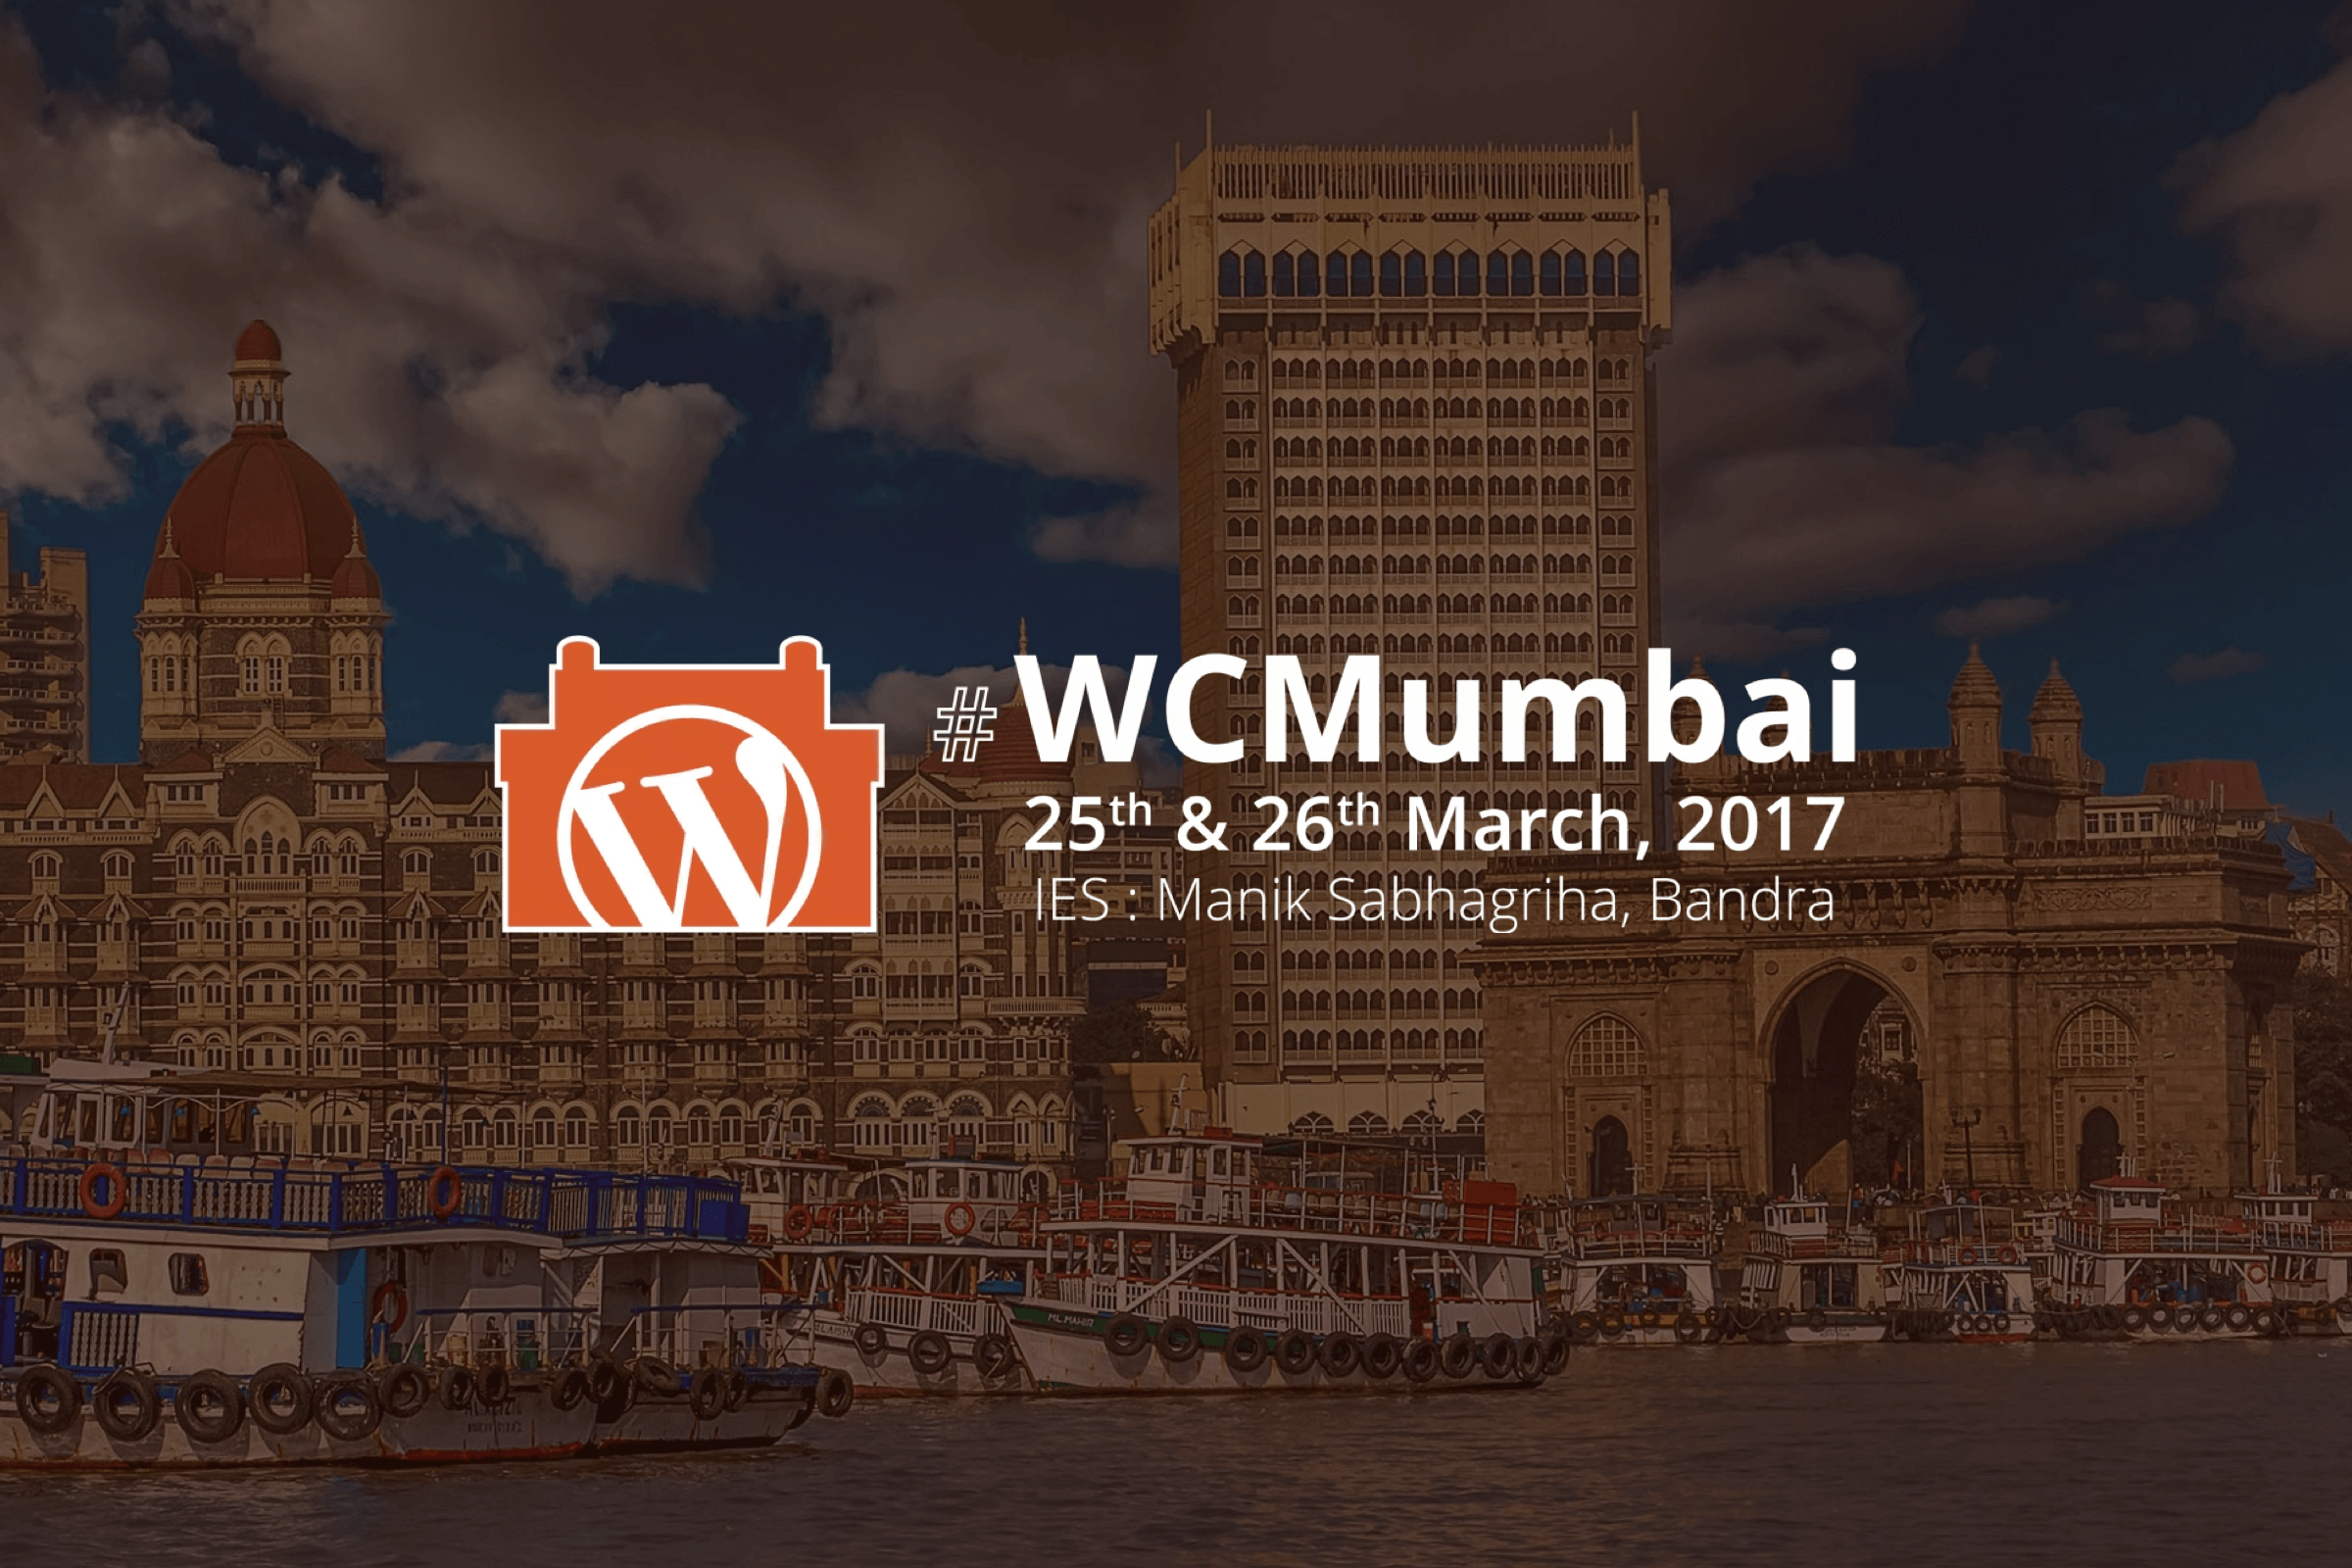 Multidots at WordCamp Mumbai 2017: The City of Dreams taught a lot to Our Team!